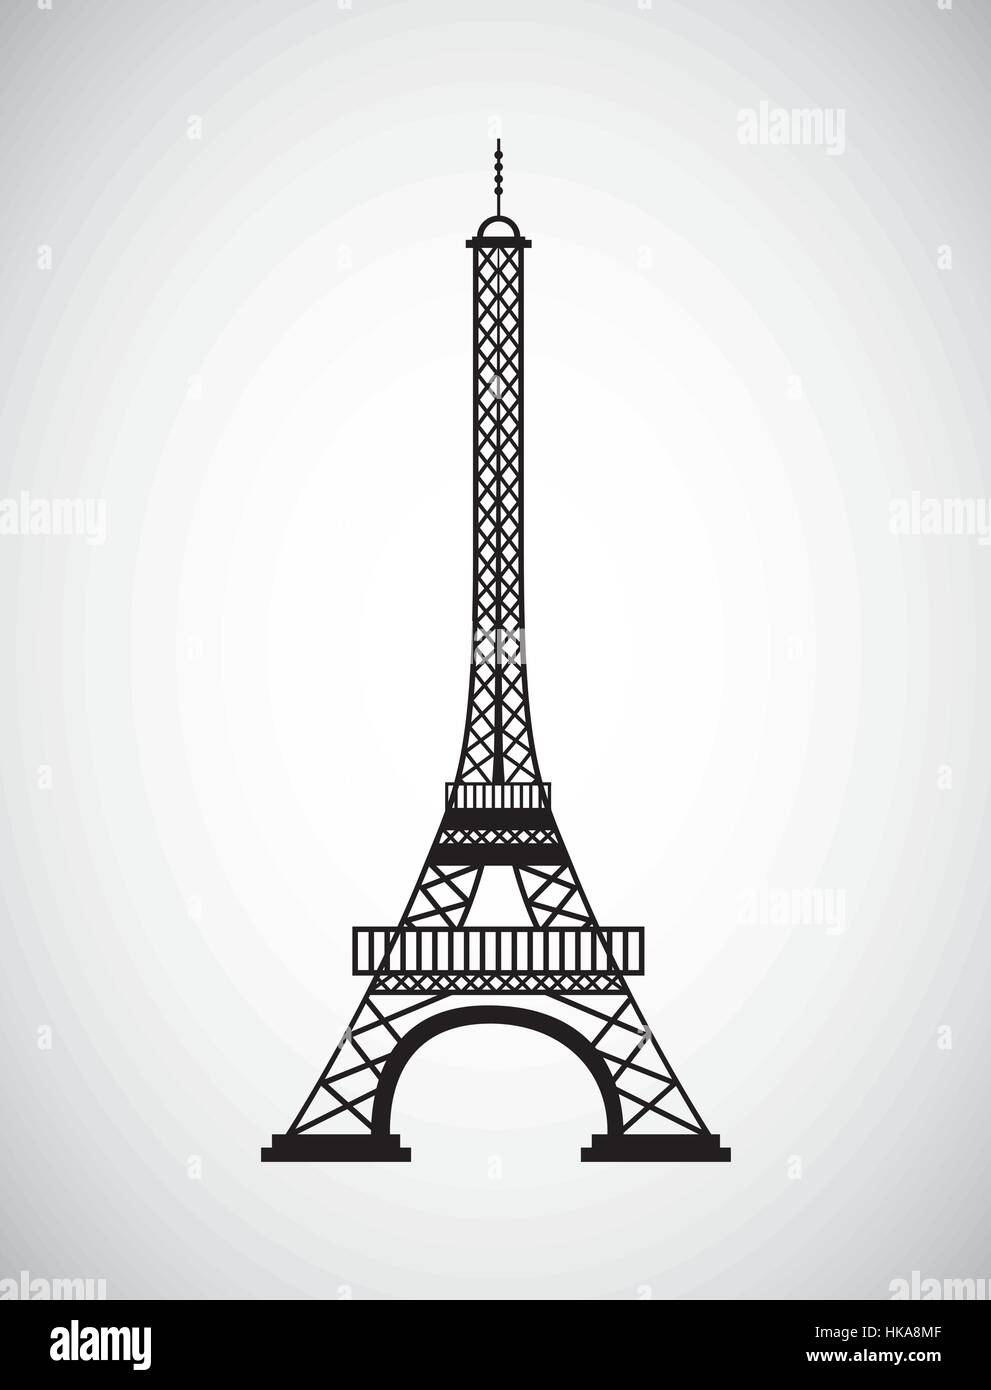 eiffel tower icon over white background. travel and tourism design. vector illustration - Stock Vector